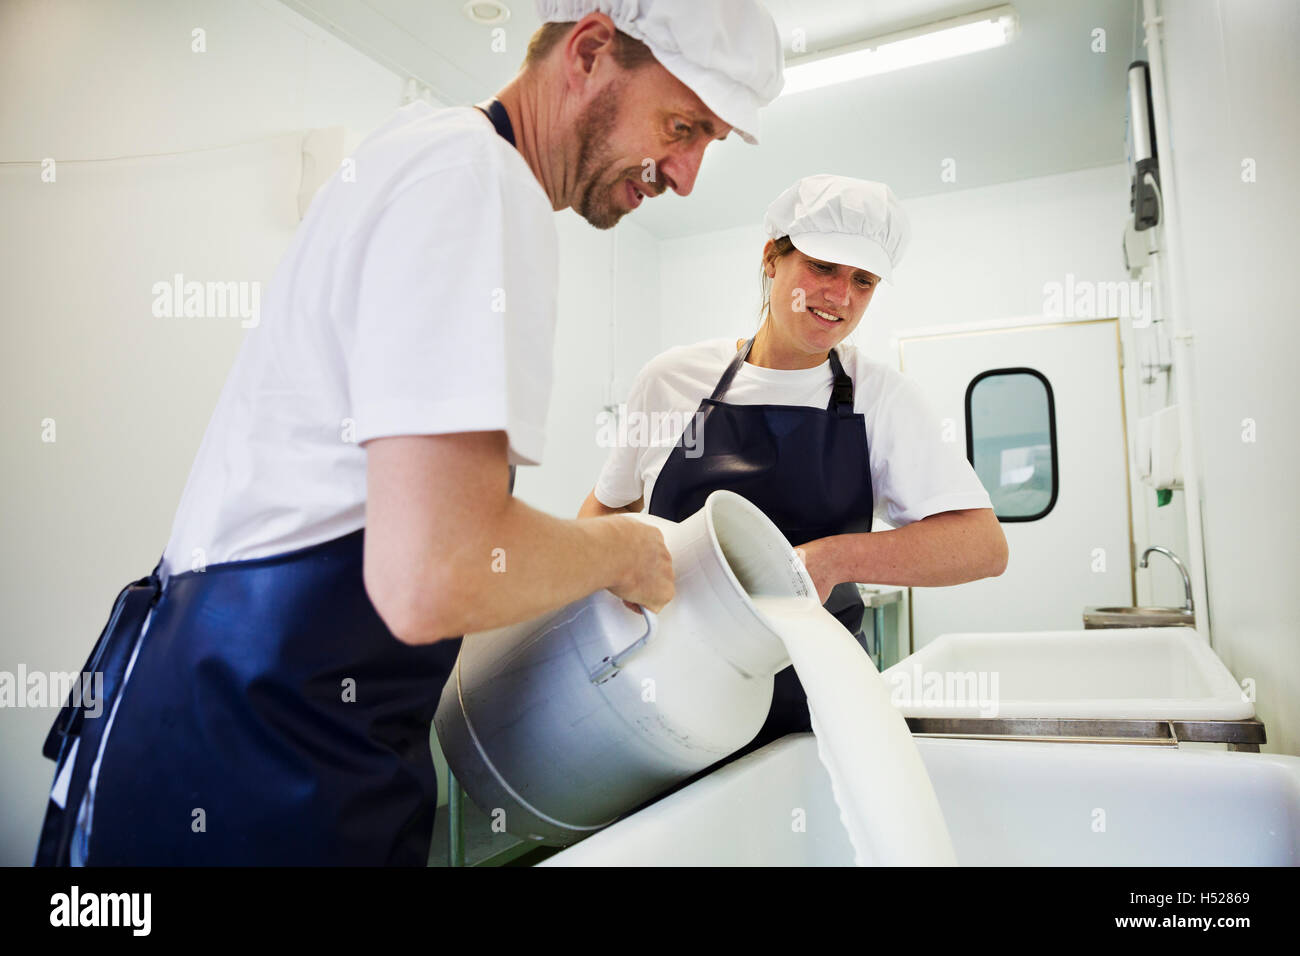 Man and woman  in a creamery, pouring goats milk from a churn, making goats cheese. - Stock Image